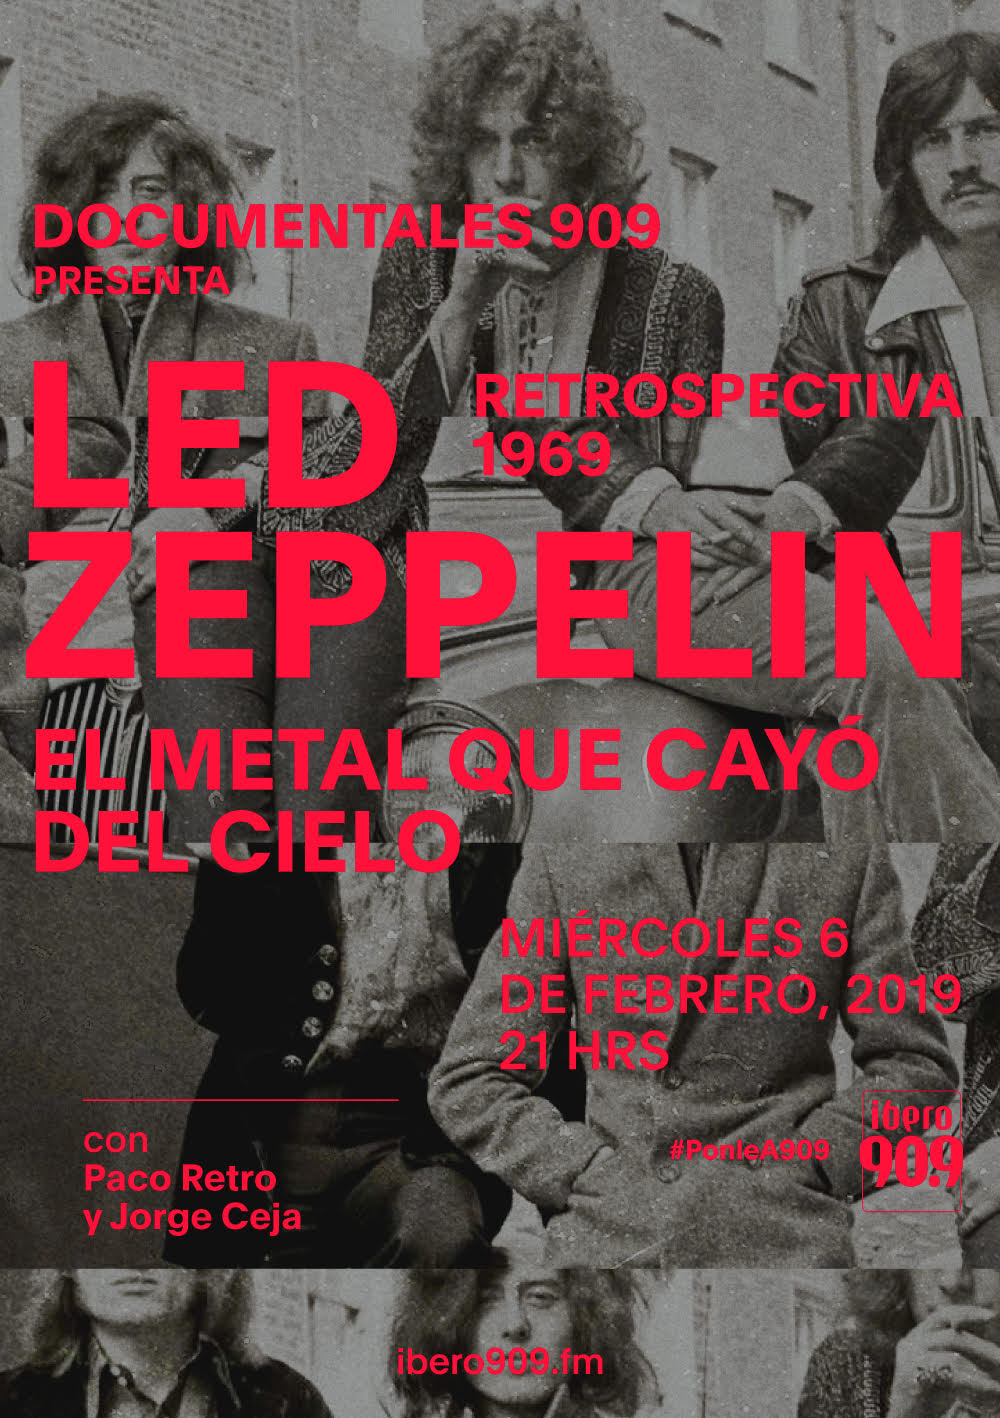 LED ZEPELLIN DOCUMENTAL IBERO 90.9